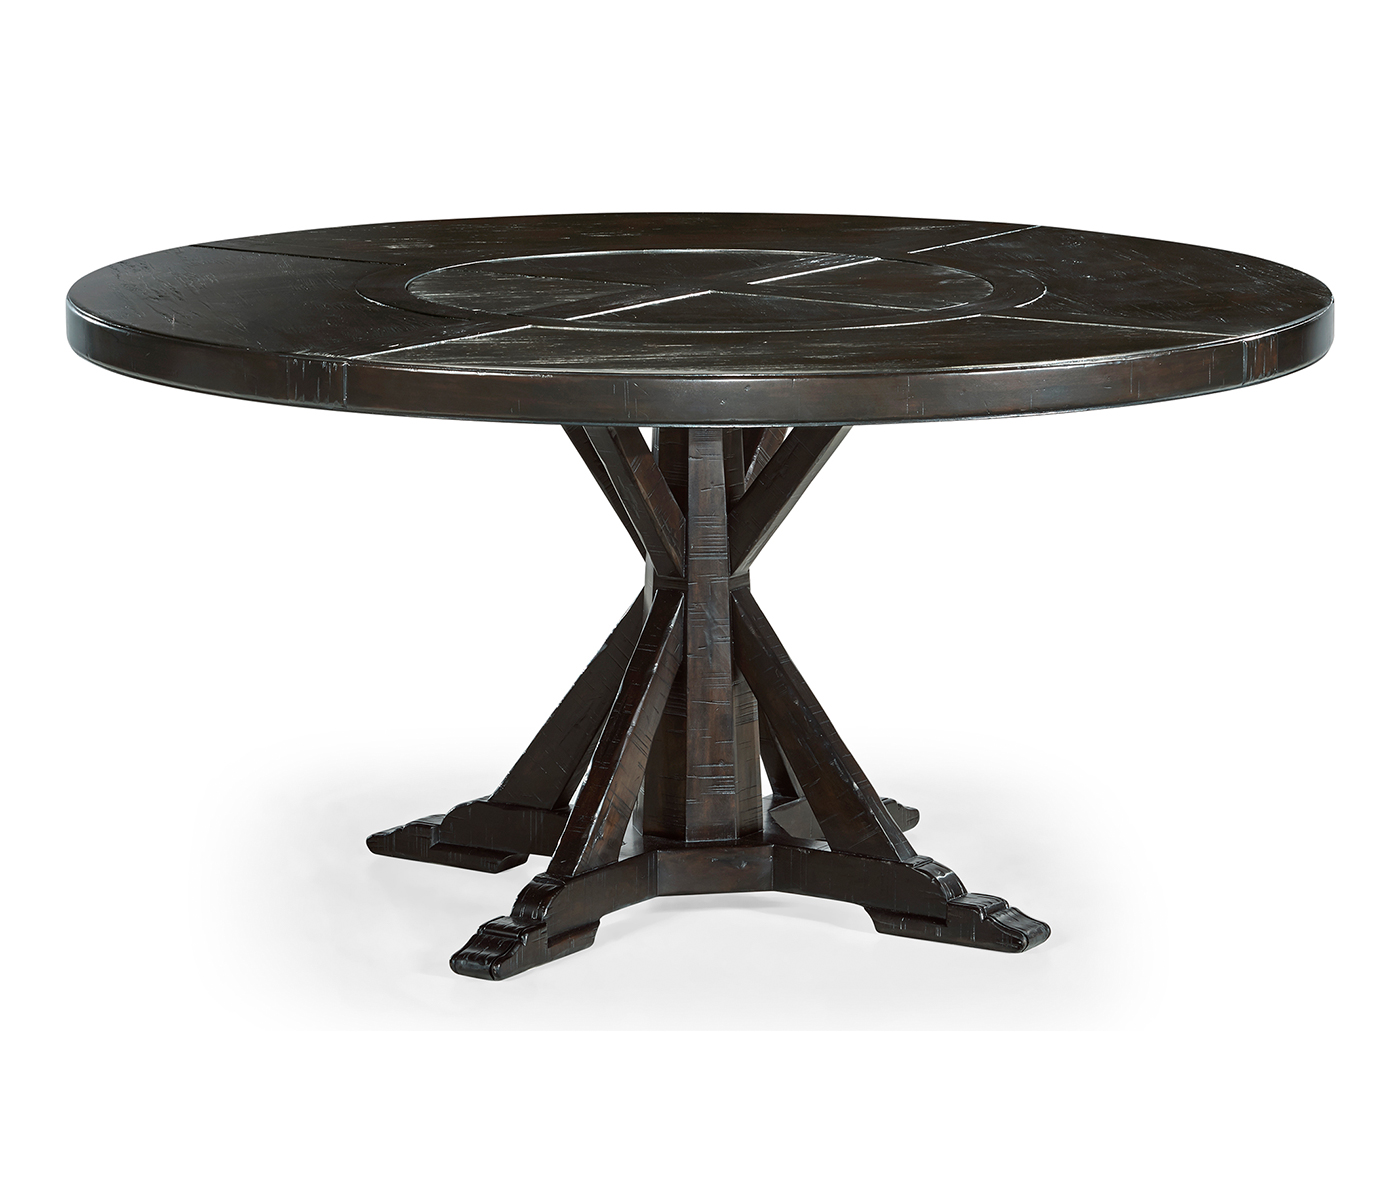 60 Dark Ale Round Dining Table With Inbuilt Lazy Susan